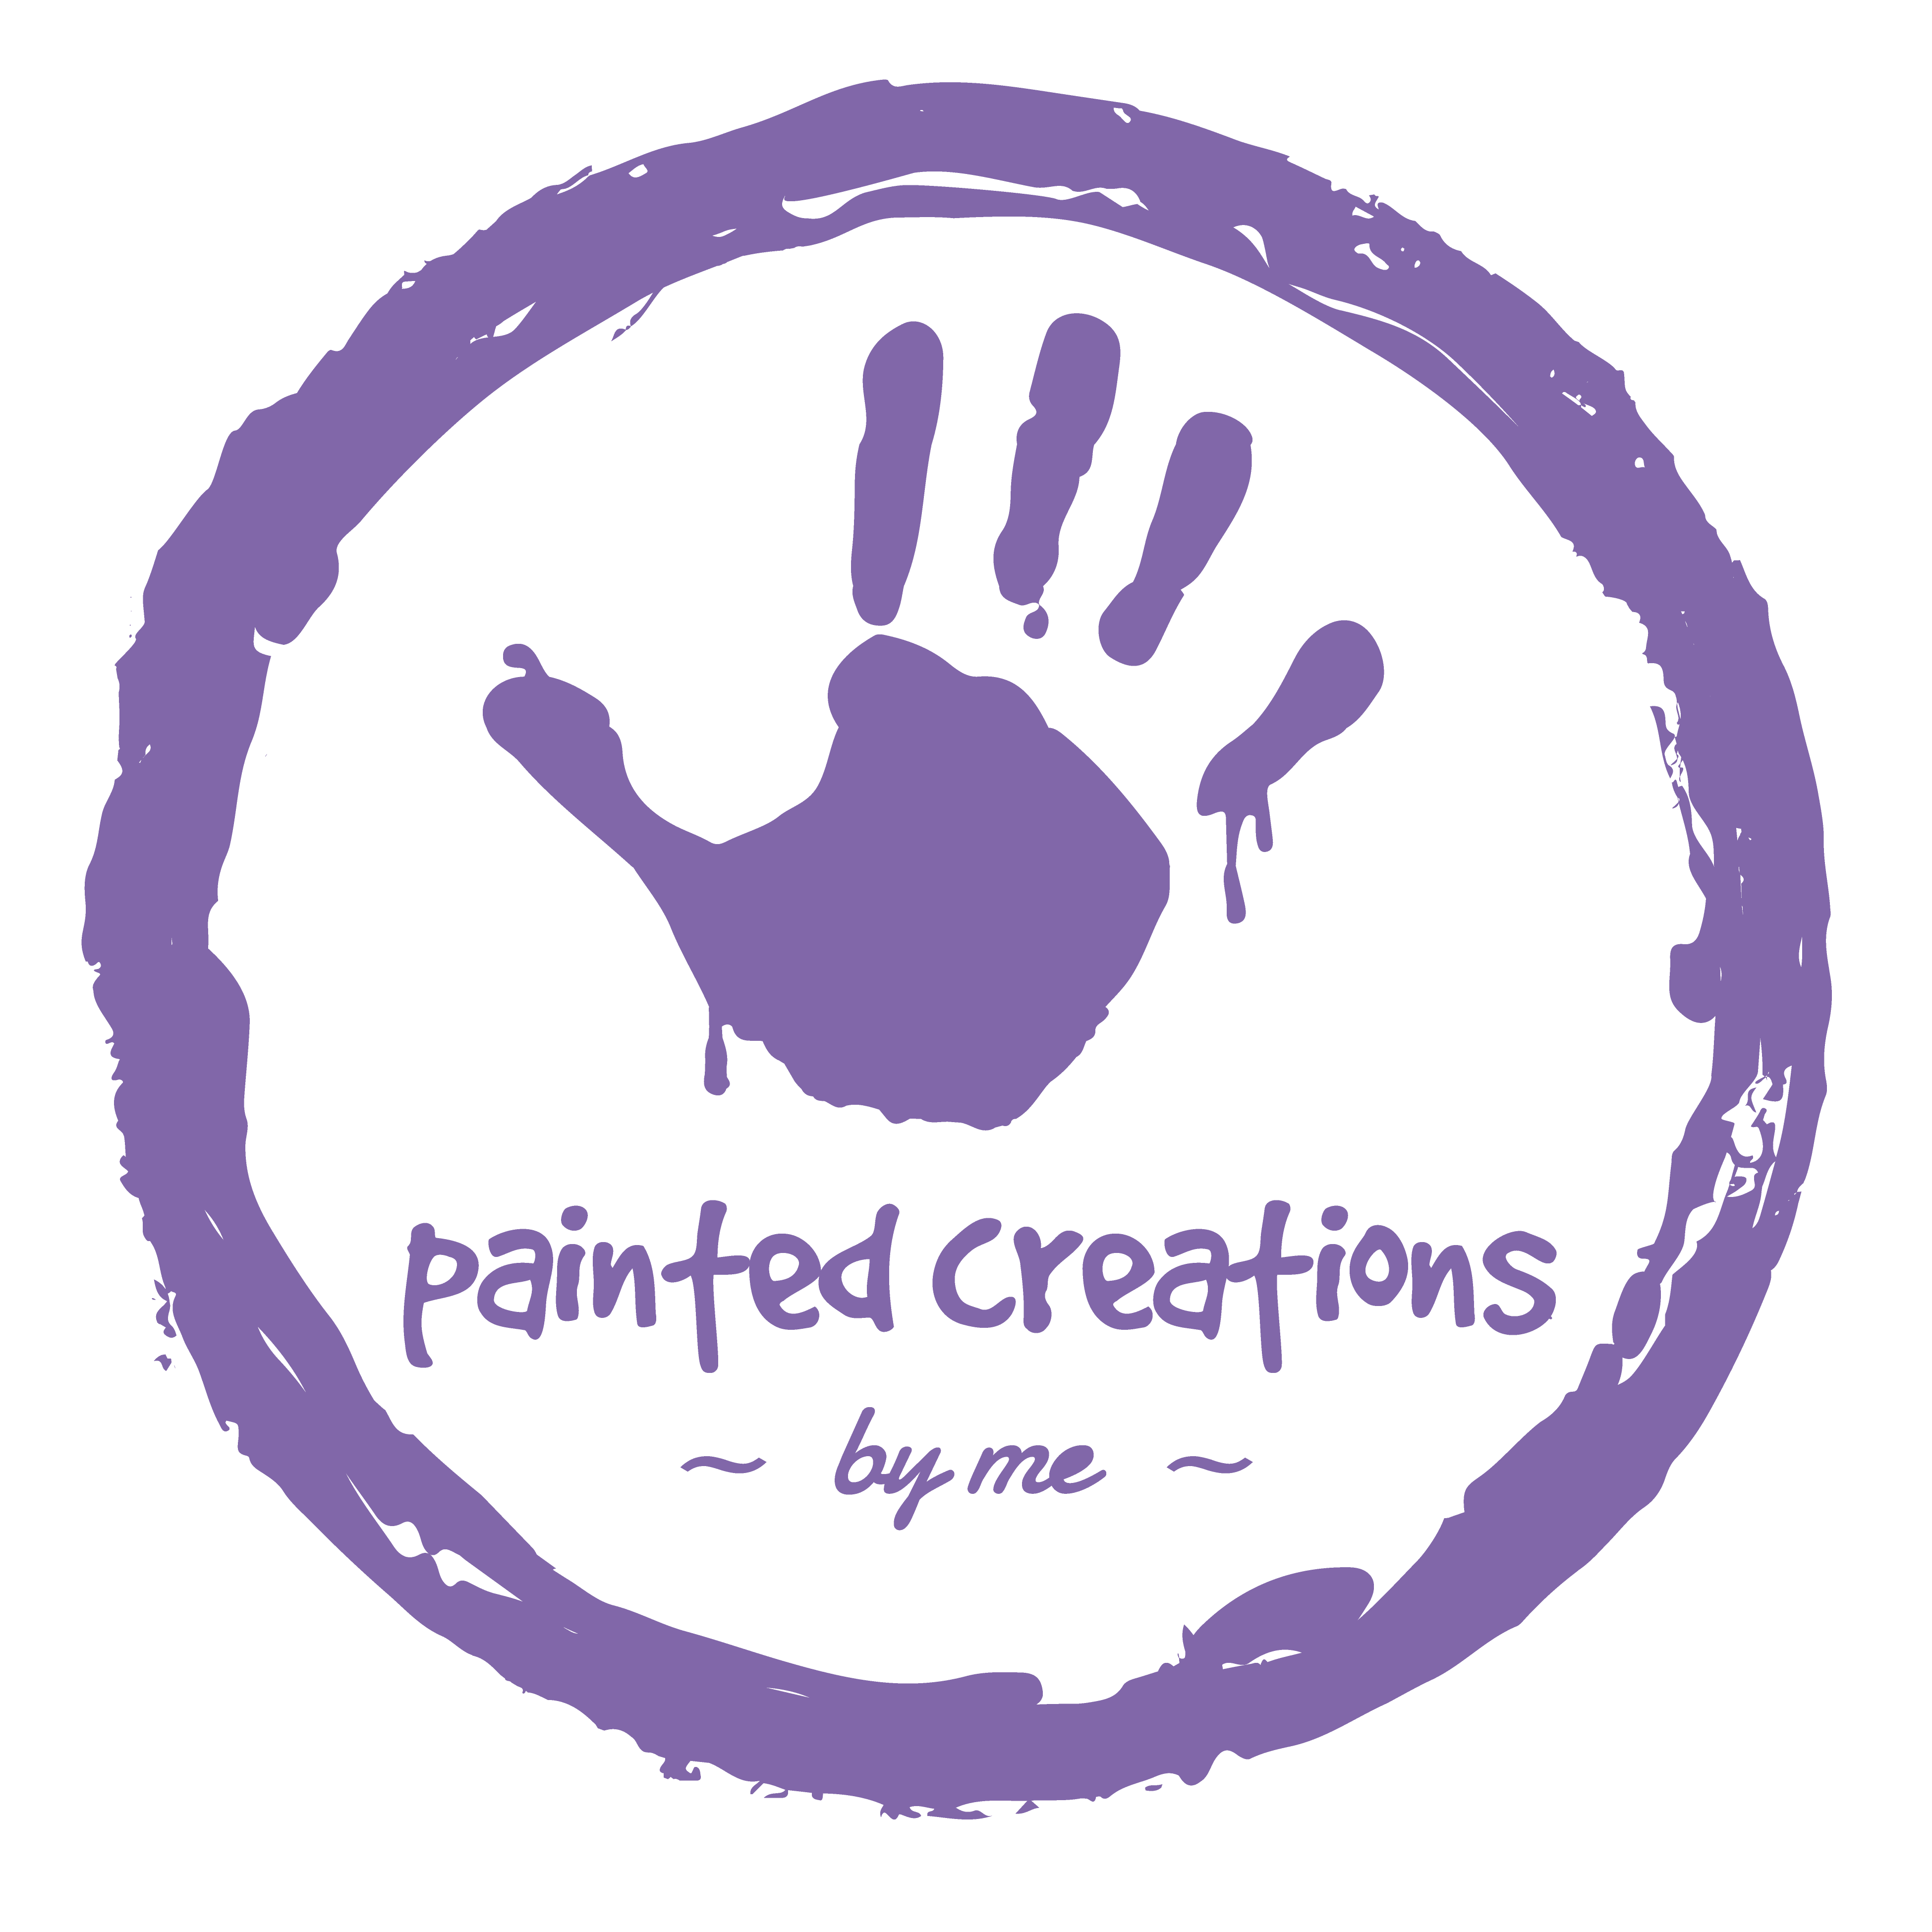 painted creations by me - purple